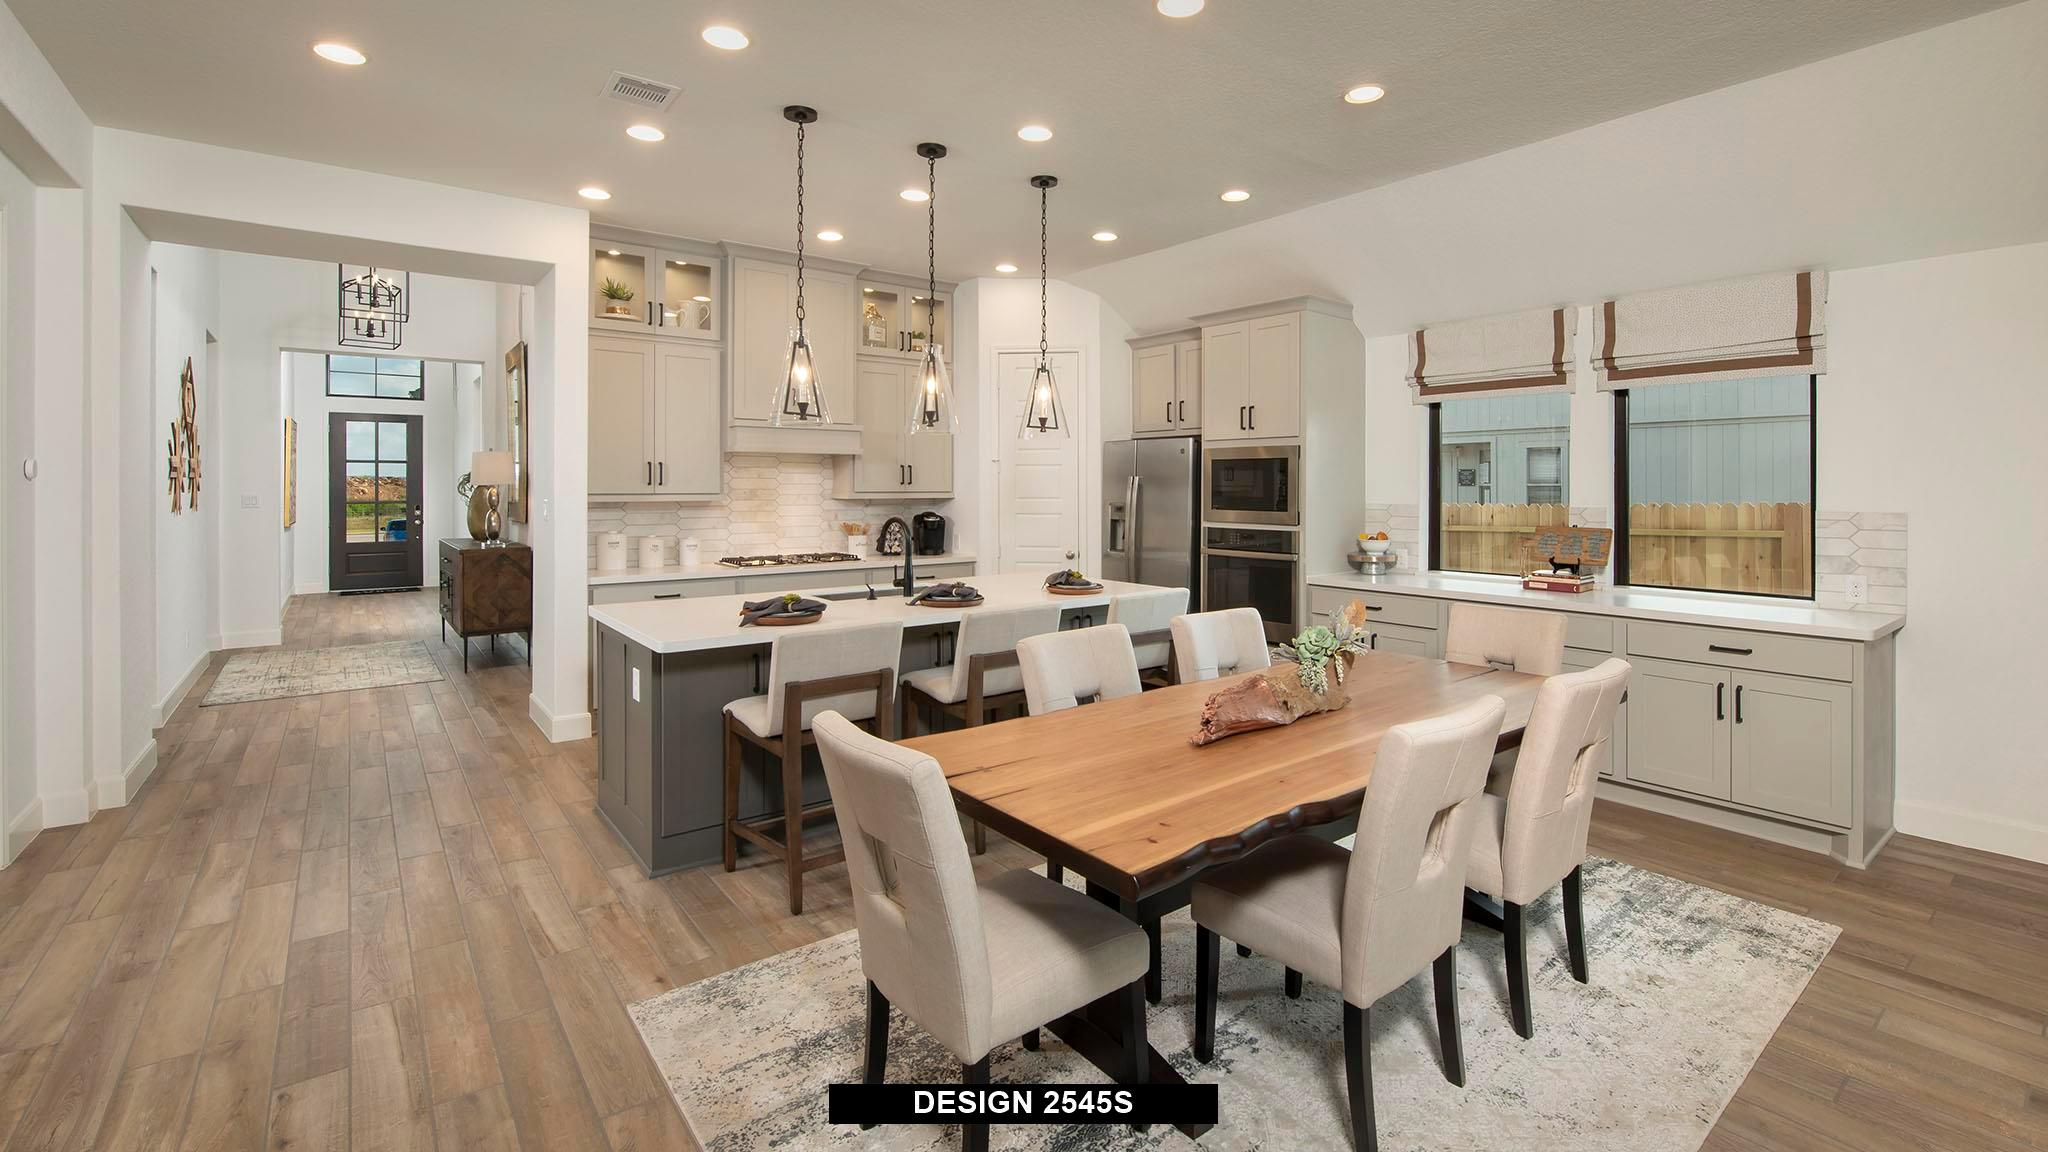 Kitchen featured in the 2545S By Perry Homes in San Antonio, TX